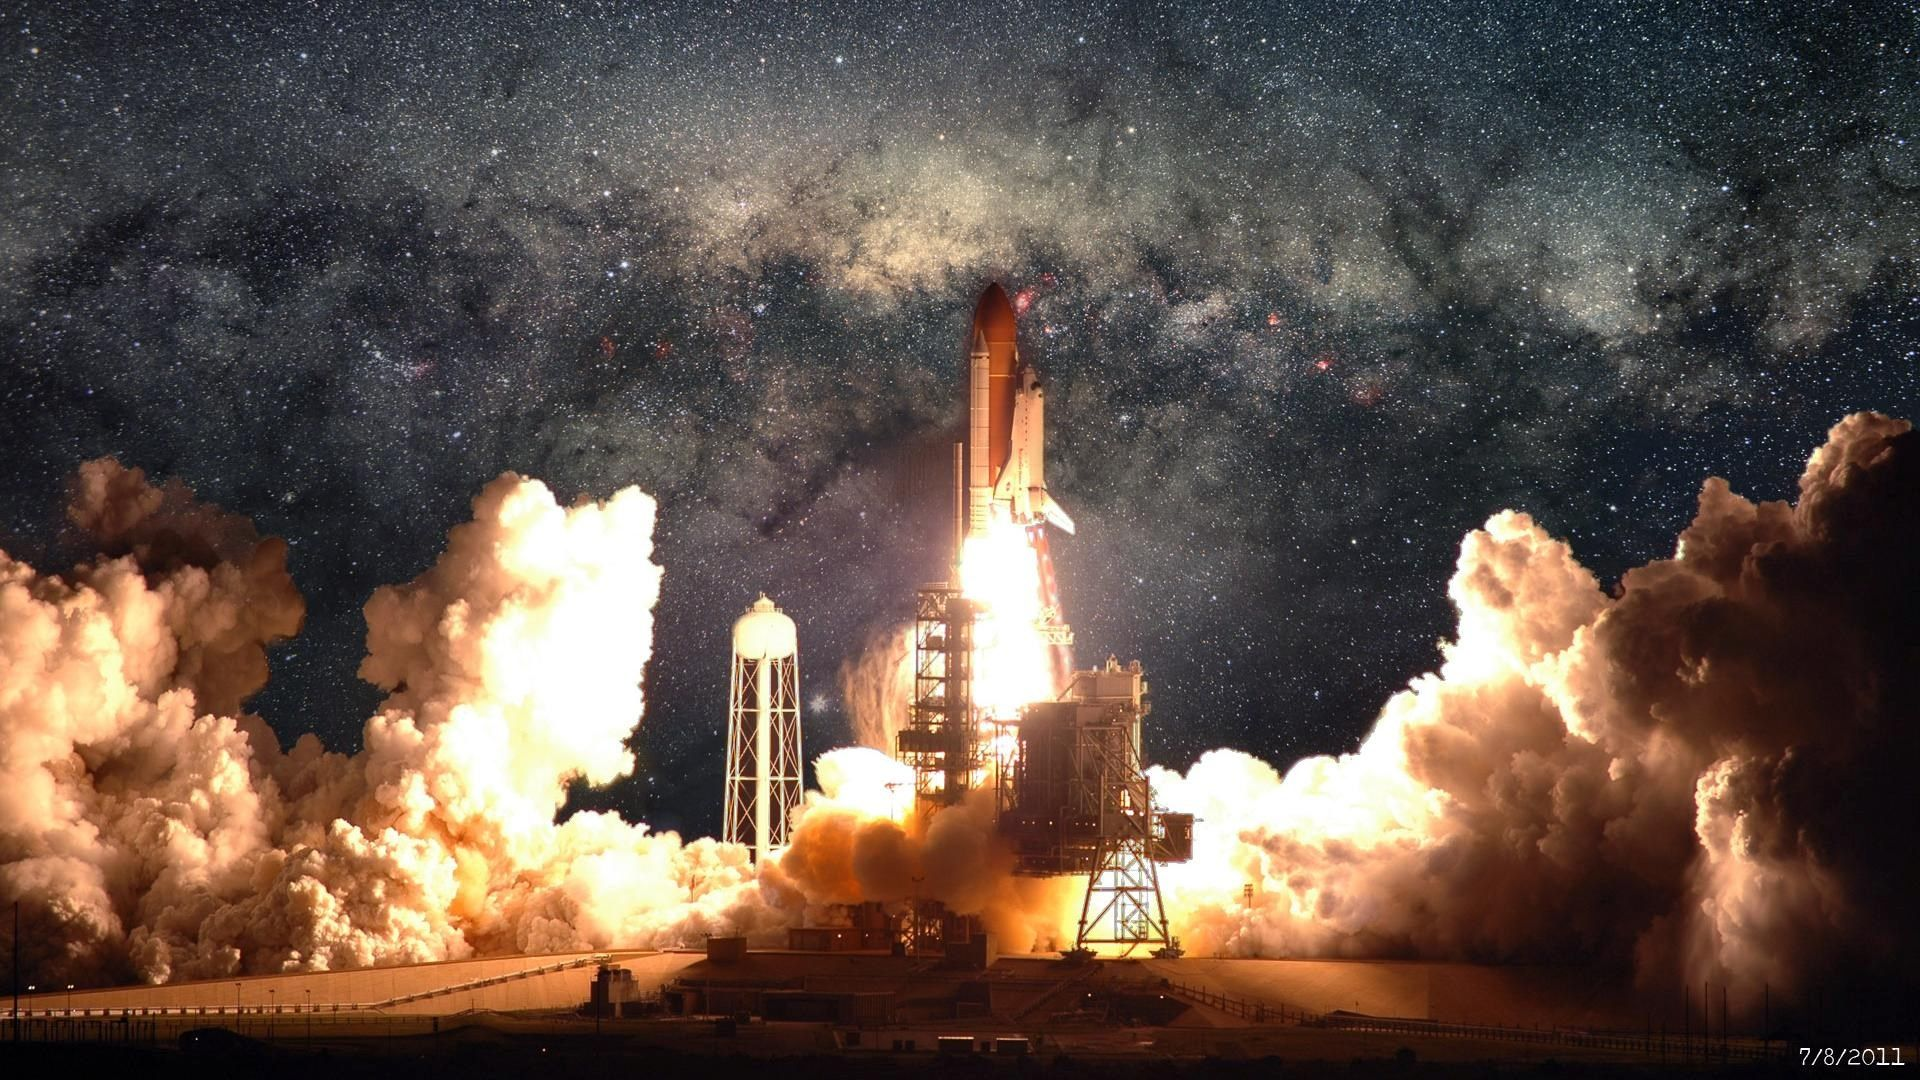 Space Shuttle Pic Free Hd Widescreen Ramsey Sinclair 1920x1080 Ciencias Fotos Astronomia